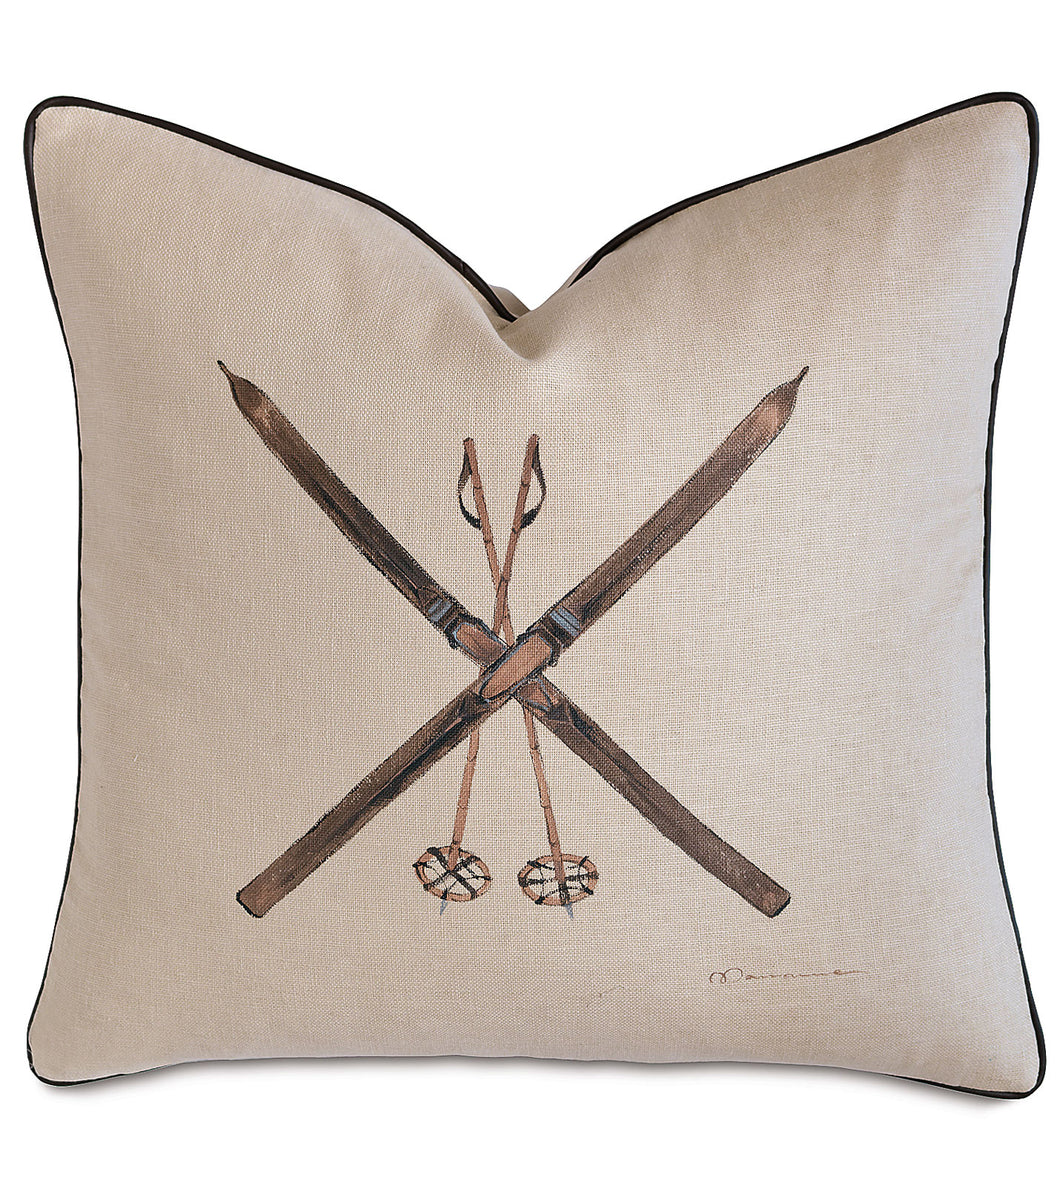 Ski Luxe Mountain Throw Pillow Hand Painted 22